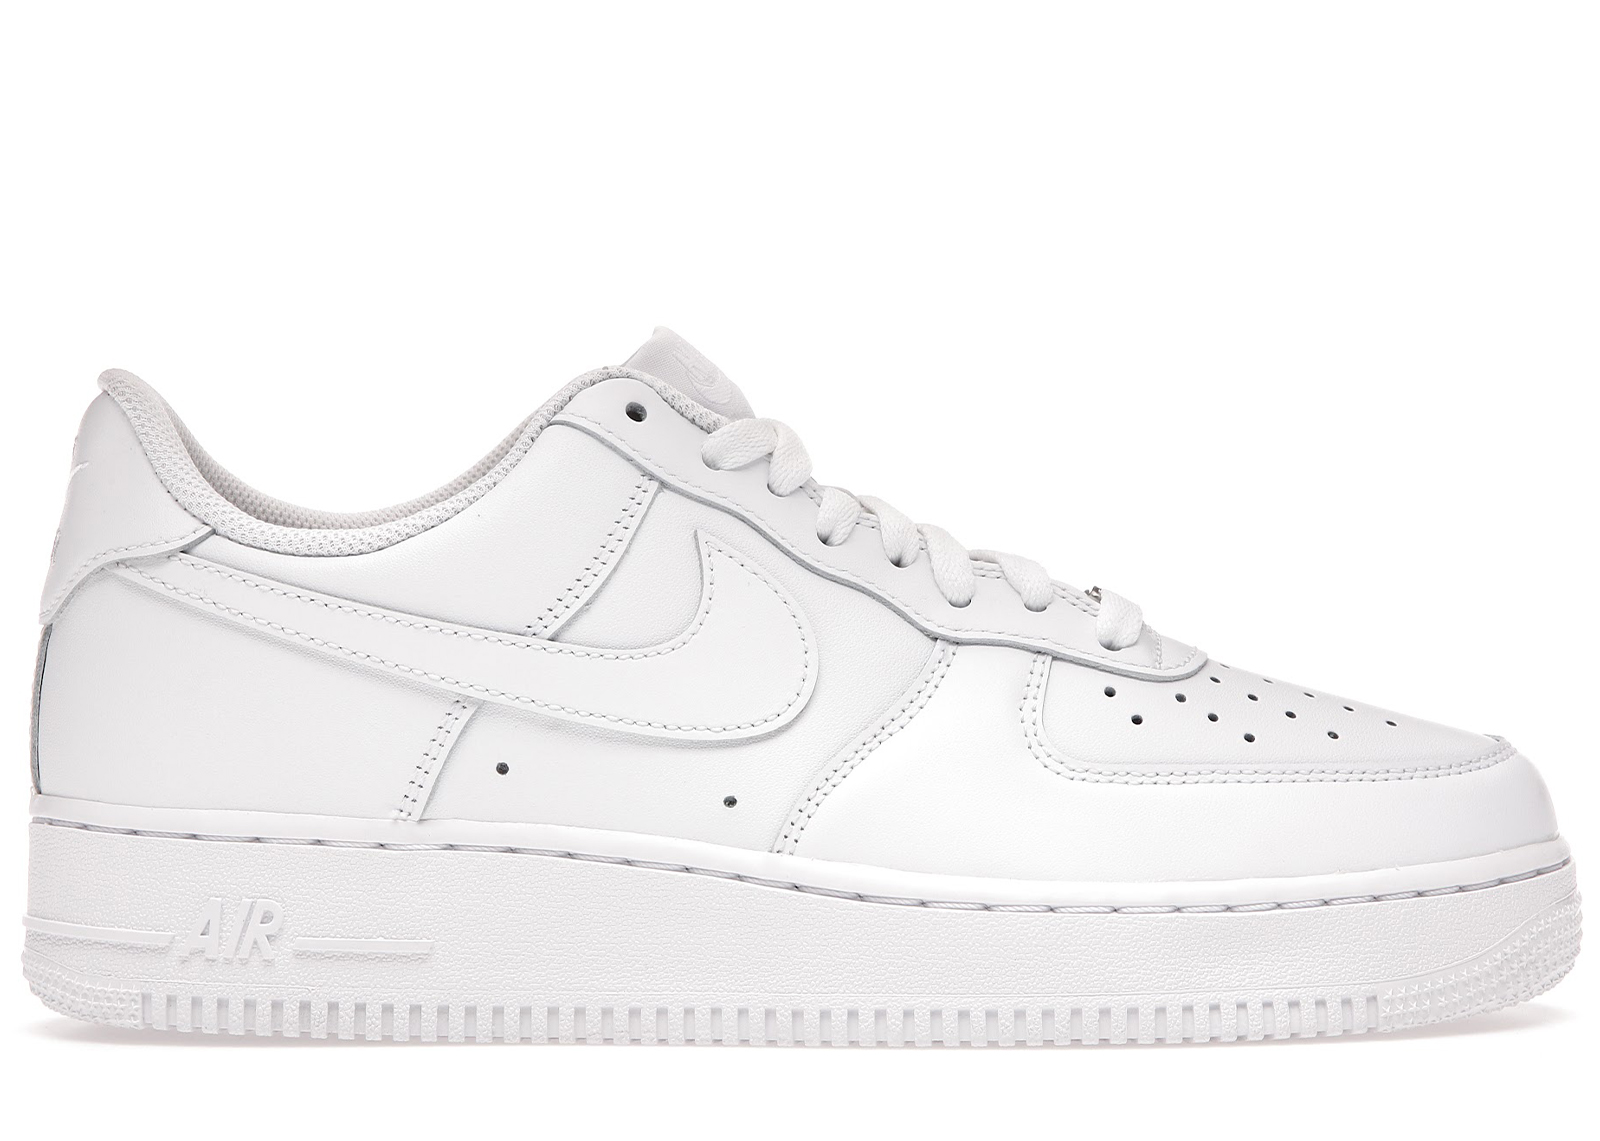 Acheter Nike Air Force Chaussures et sneakers neuves